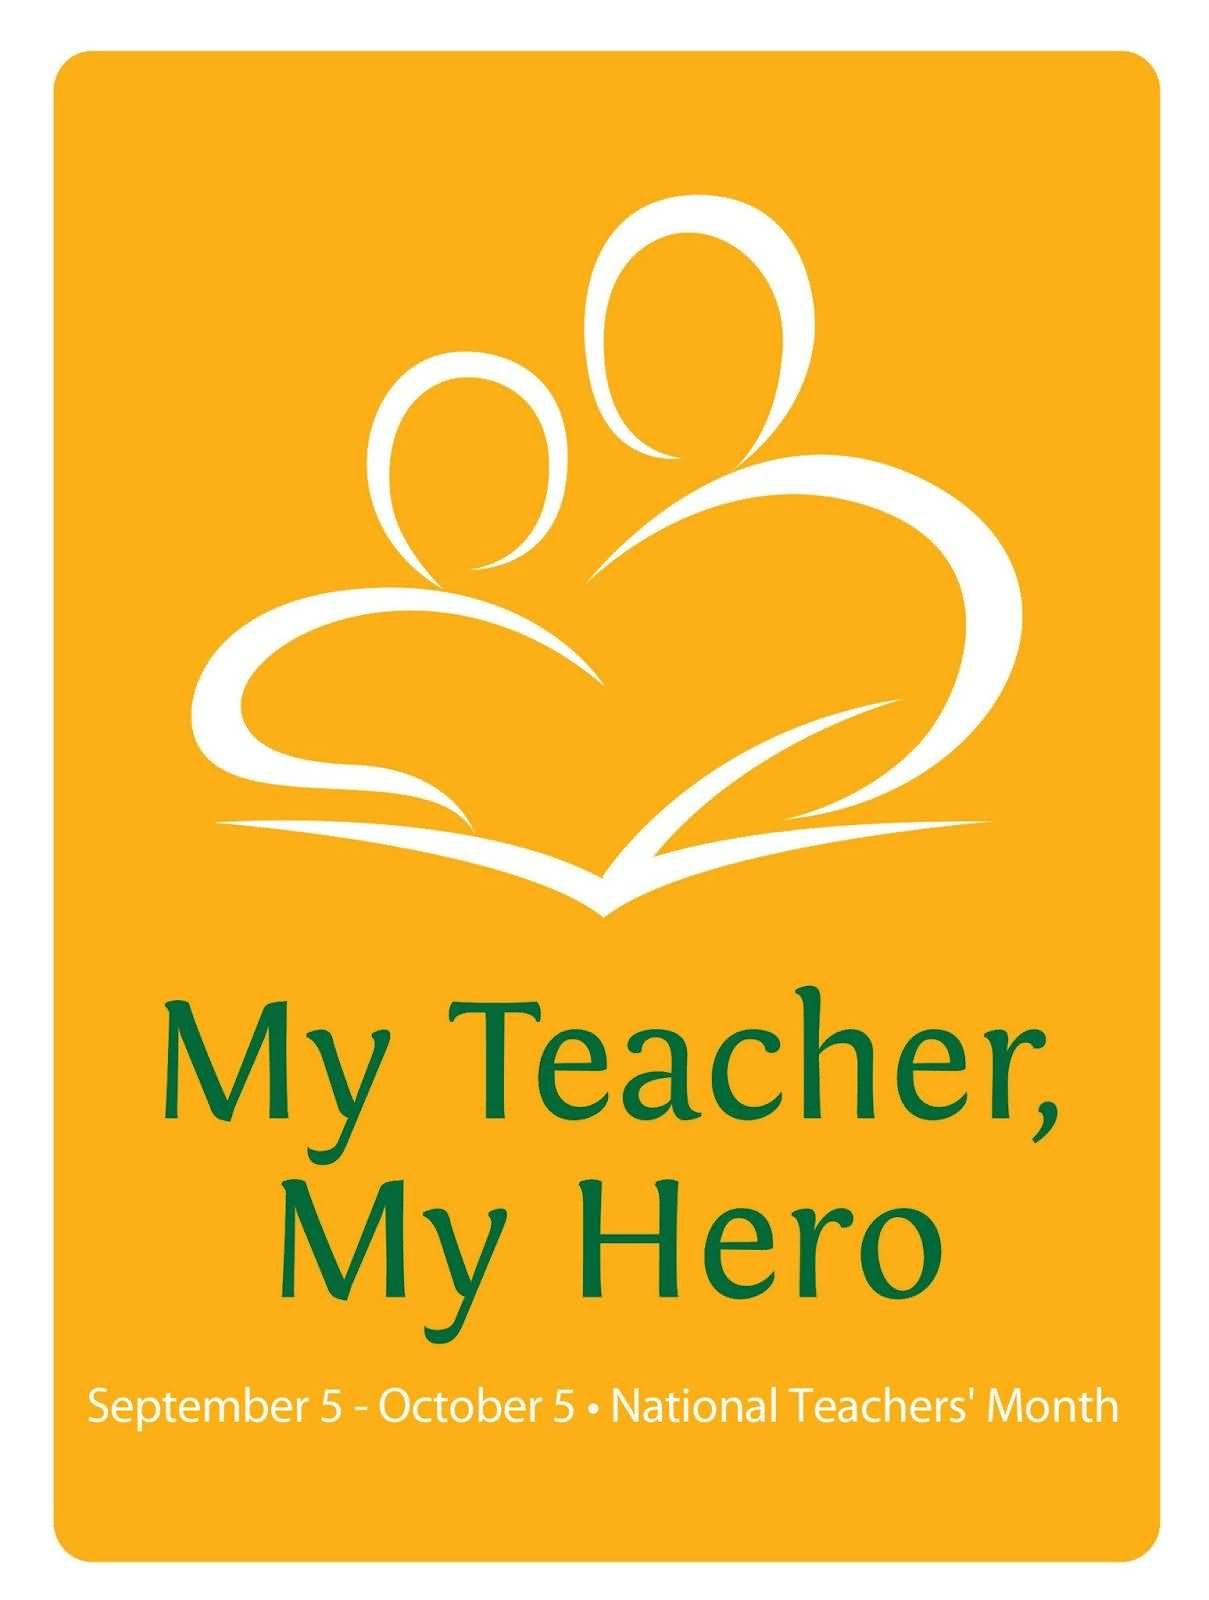 52-World Teachers Day Wishes